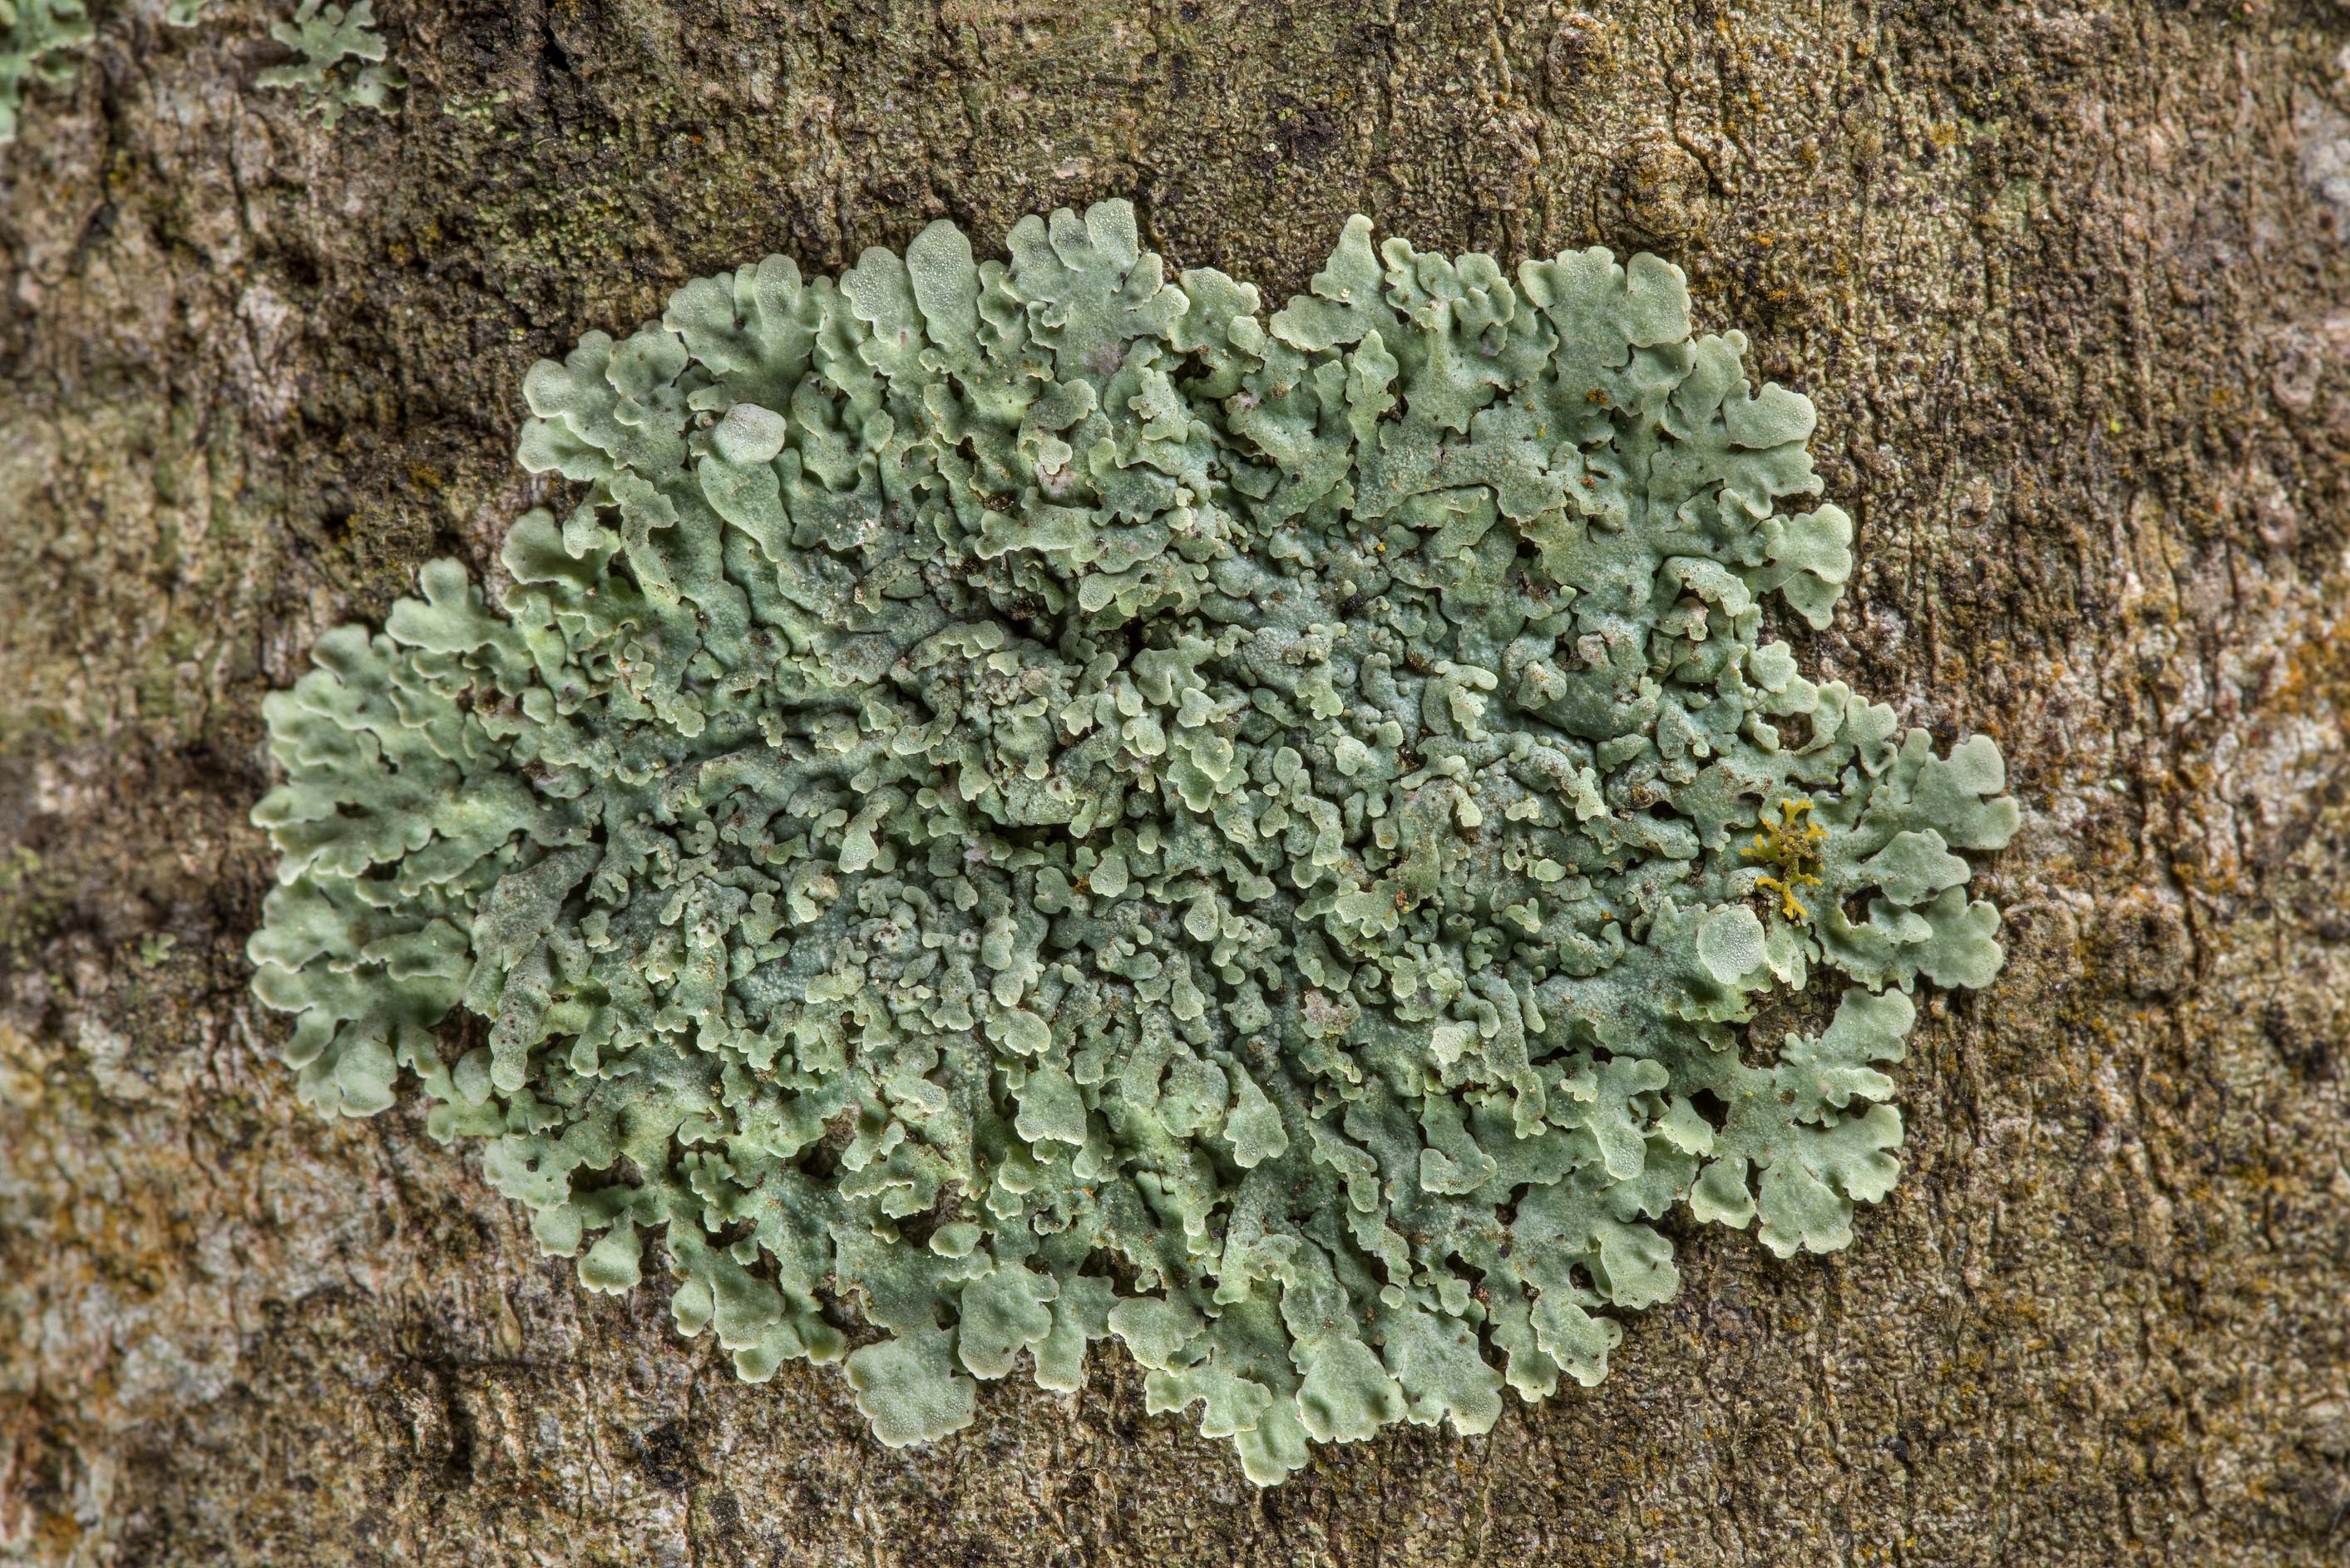 Patch of rosette lichen (Physcia) on a tree on...Nature Trail, College Station, Texas